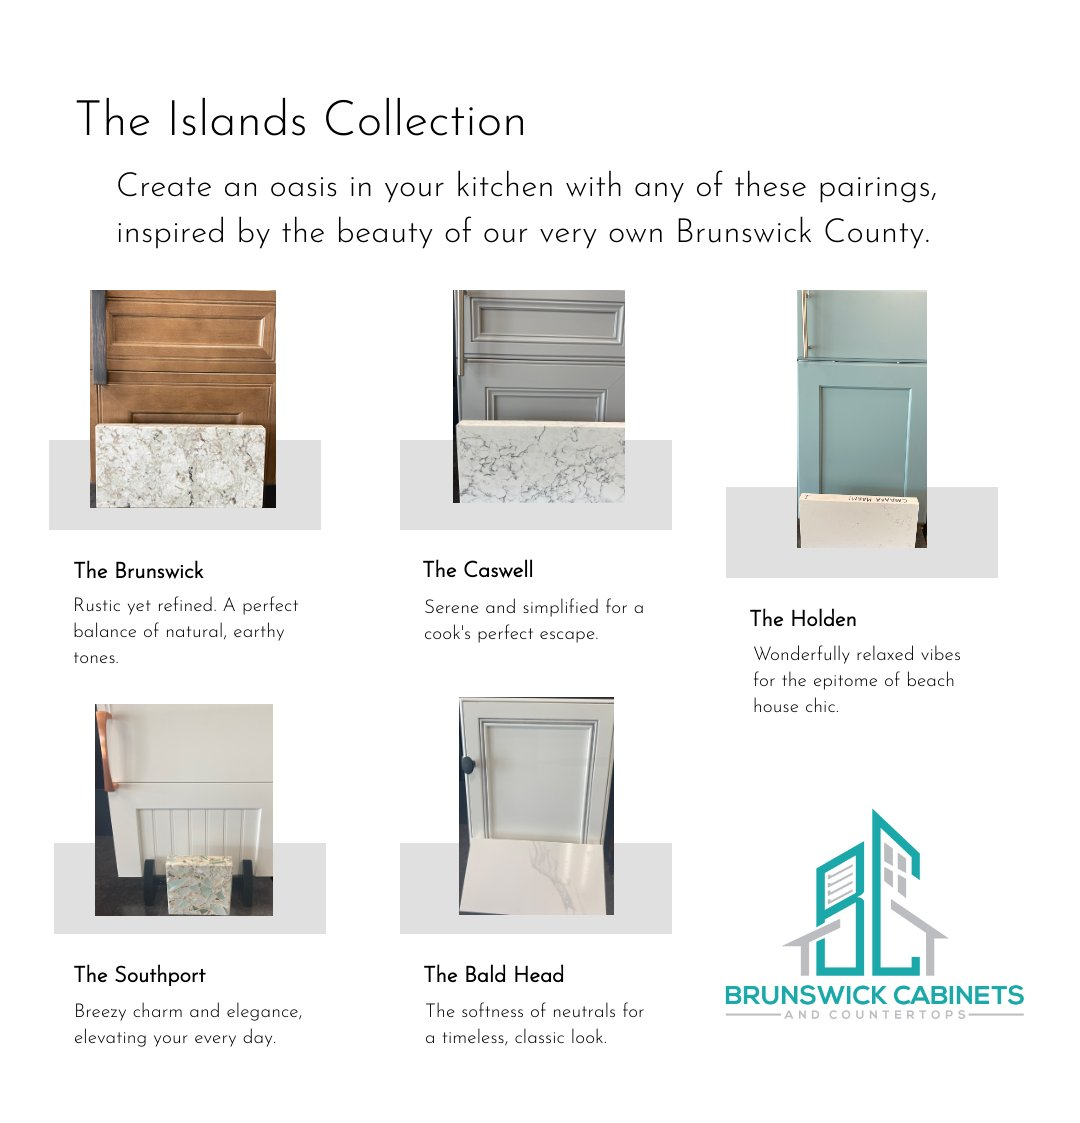 Curated Collection by Brunswick Cabinets and Countertops